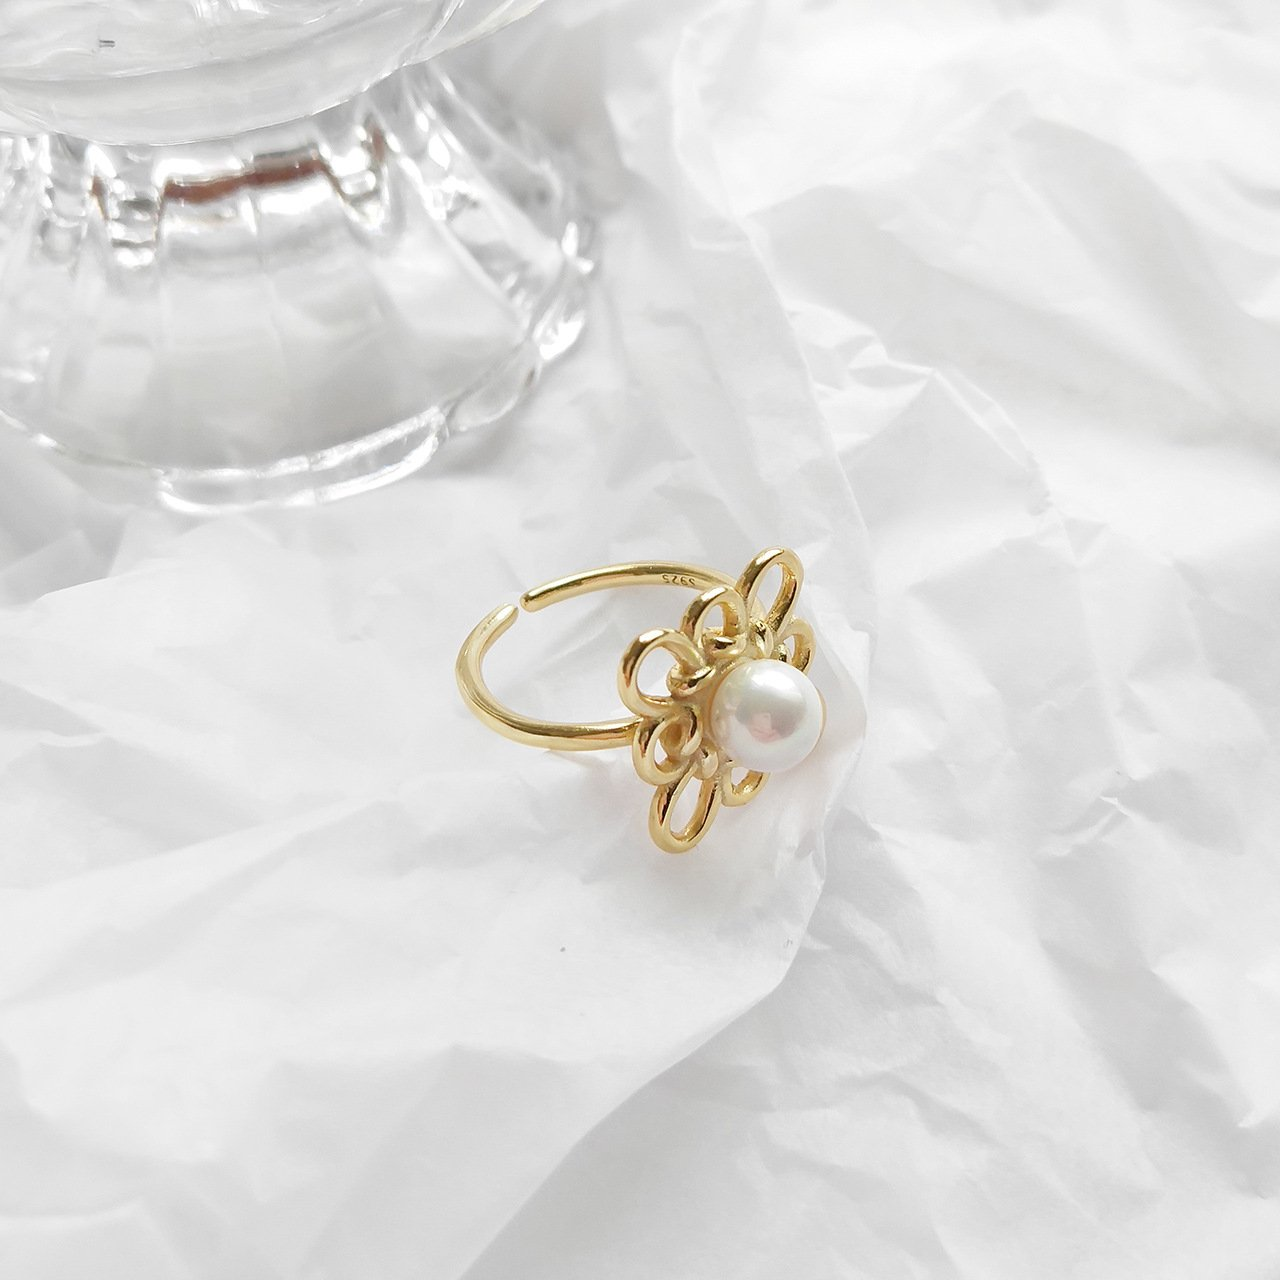 S925 Sterling Silver flower ring - Bolino Studio - Minimalist Jewellery